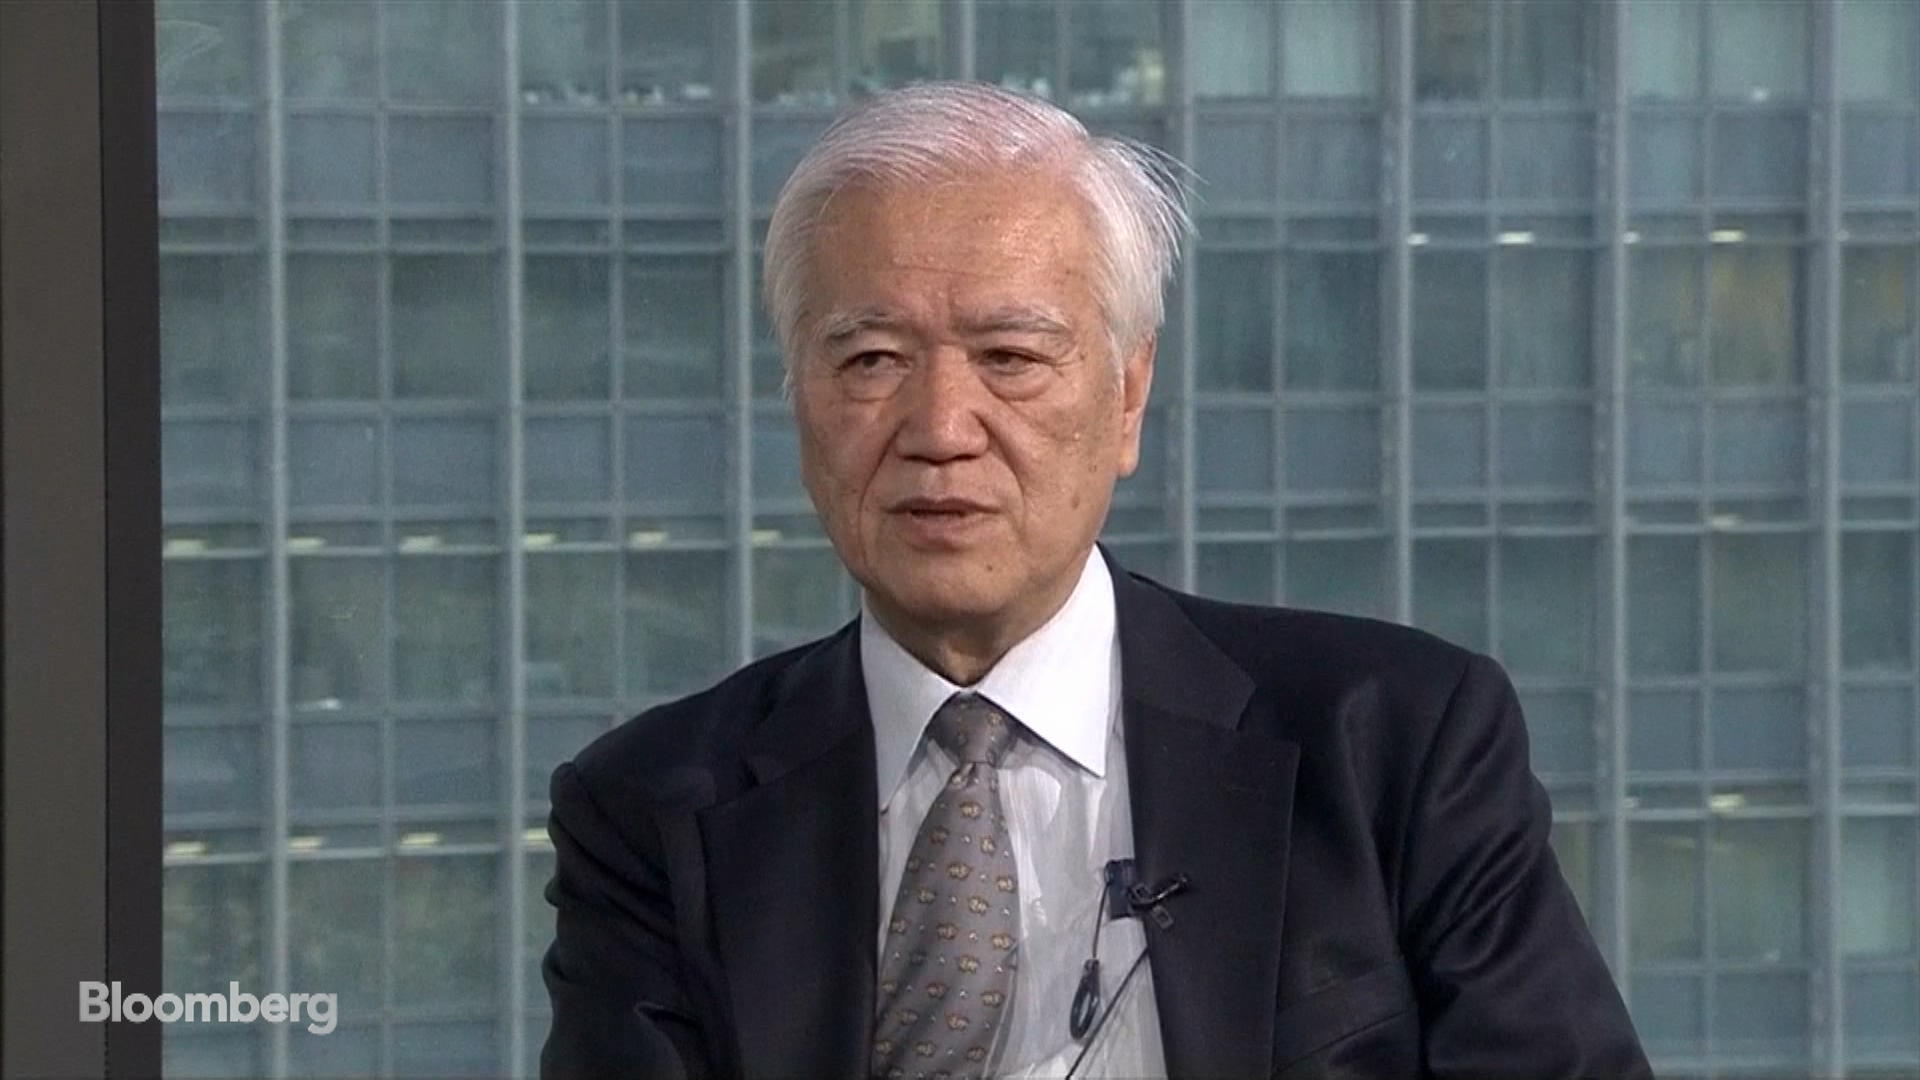 Bank of Japan Likely to Keep Current Policy, Ex-FX Chief Says